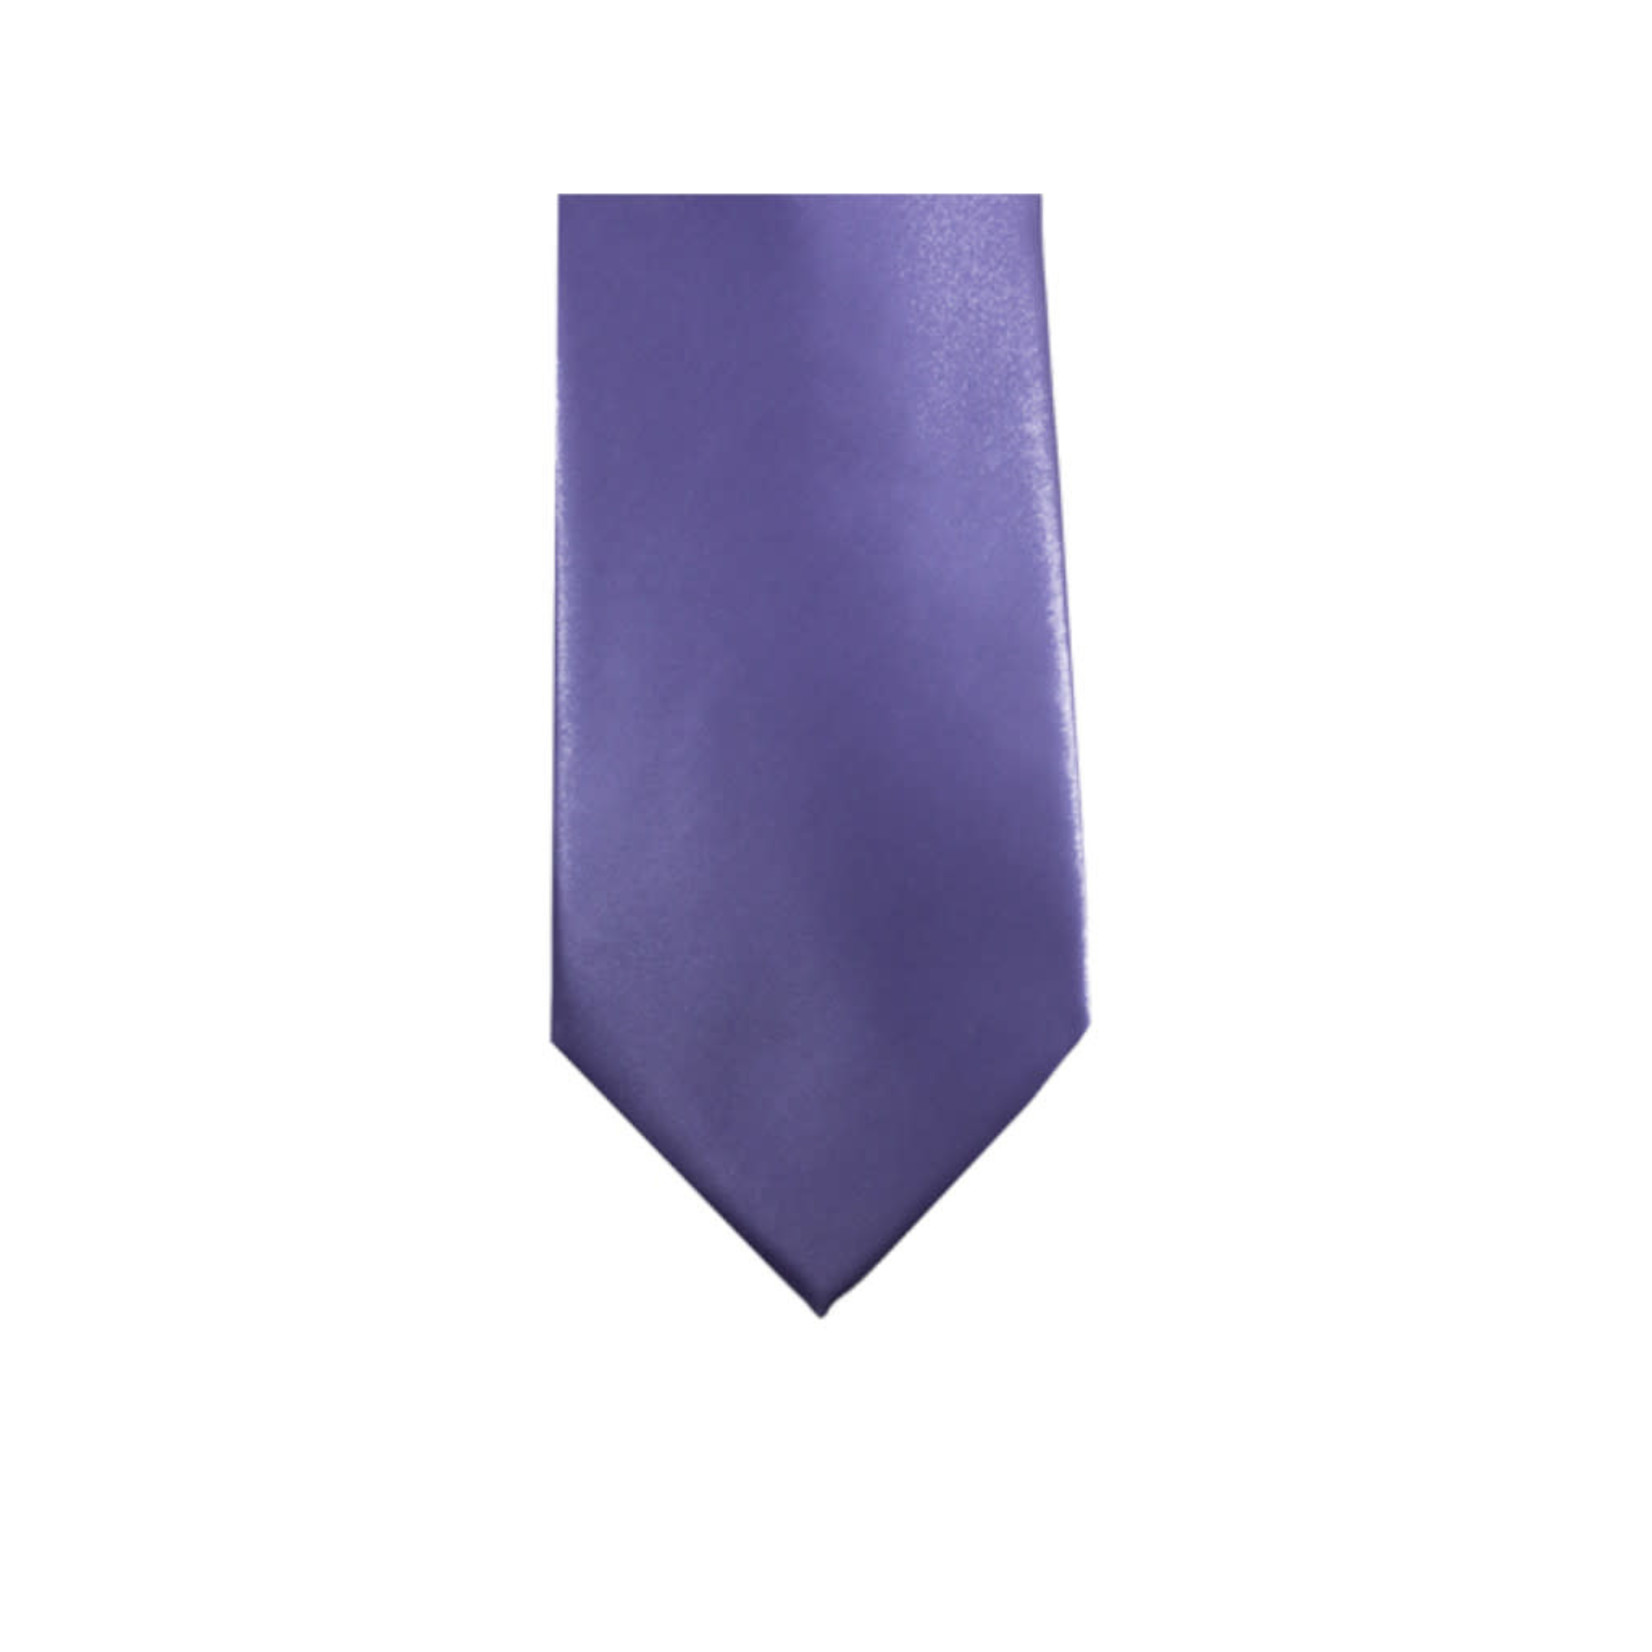 Knotz M100-13 Solid Lilac Tie